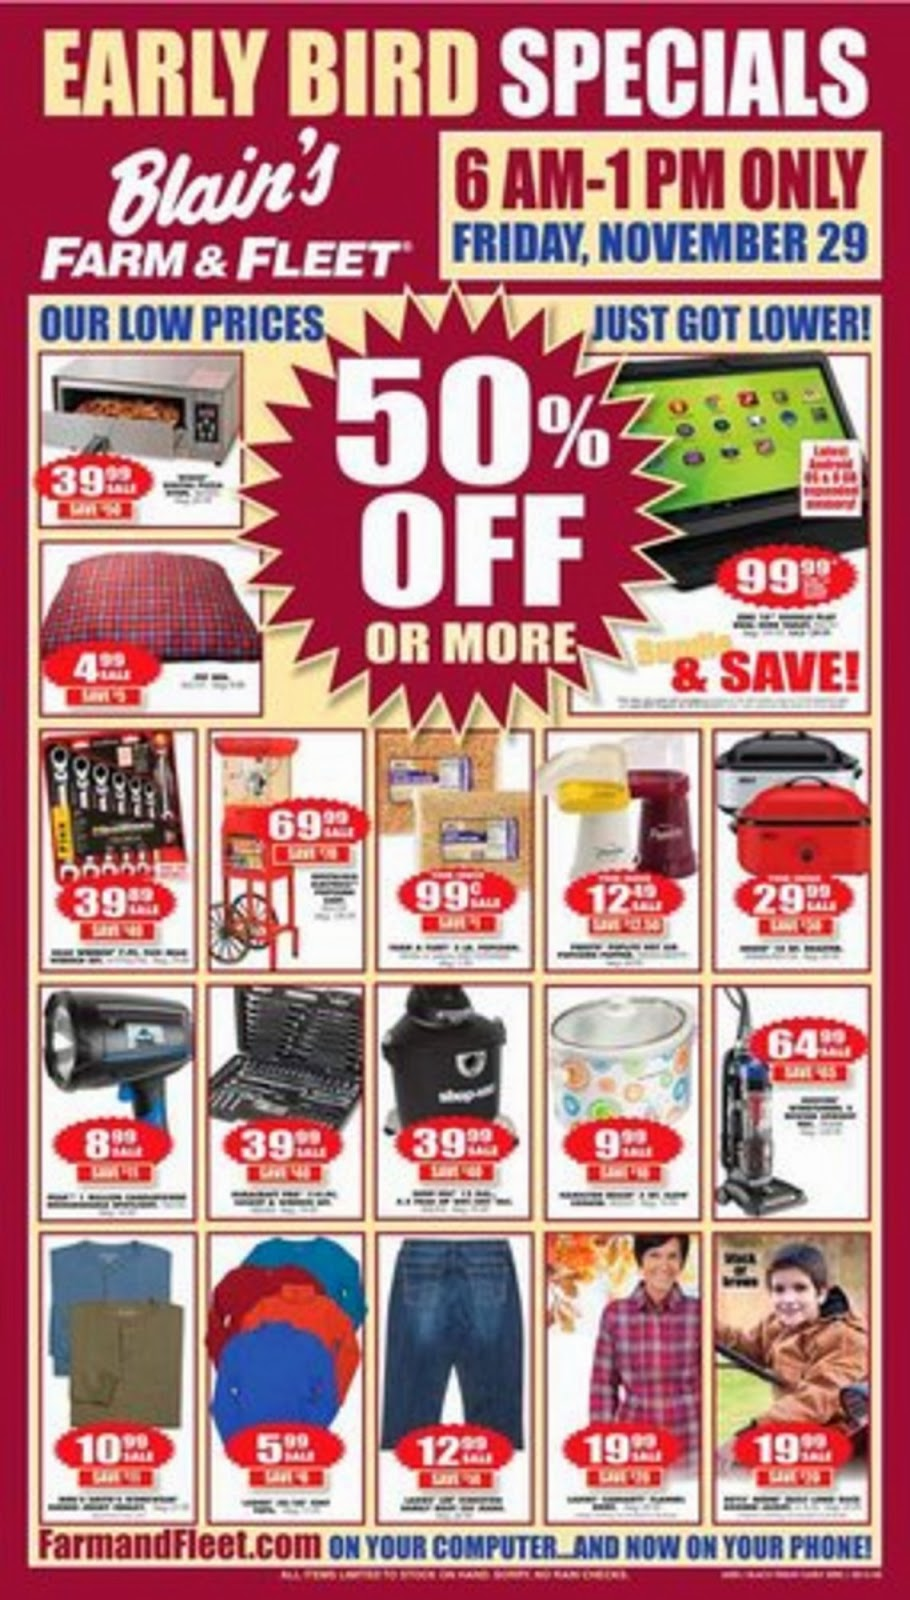 Blain's Farm and Fleet Black Friday Ad 2013 | Black Friday Ads 2013